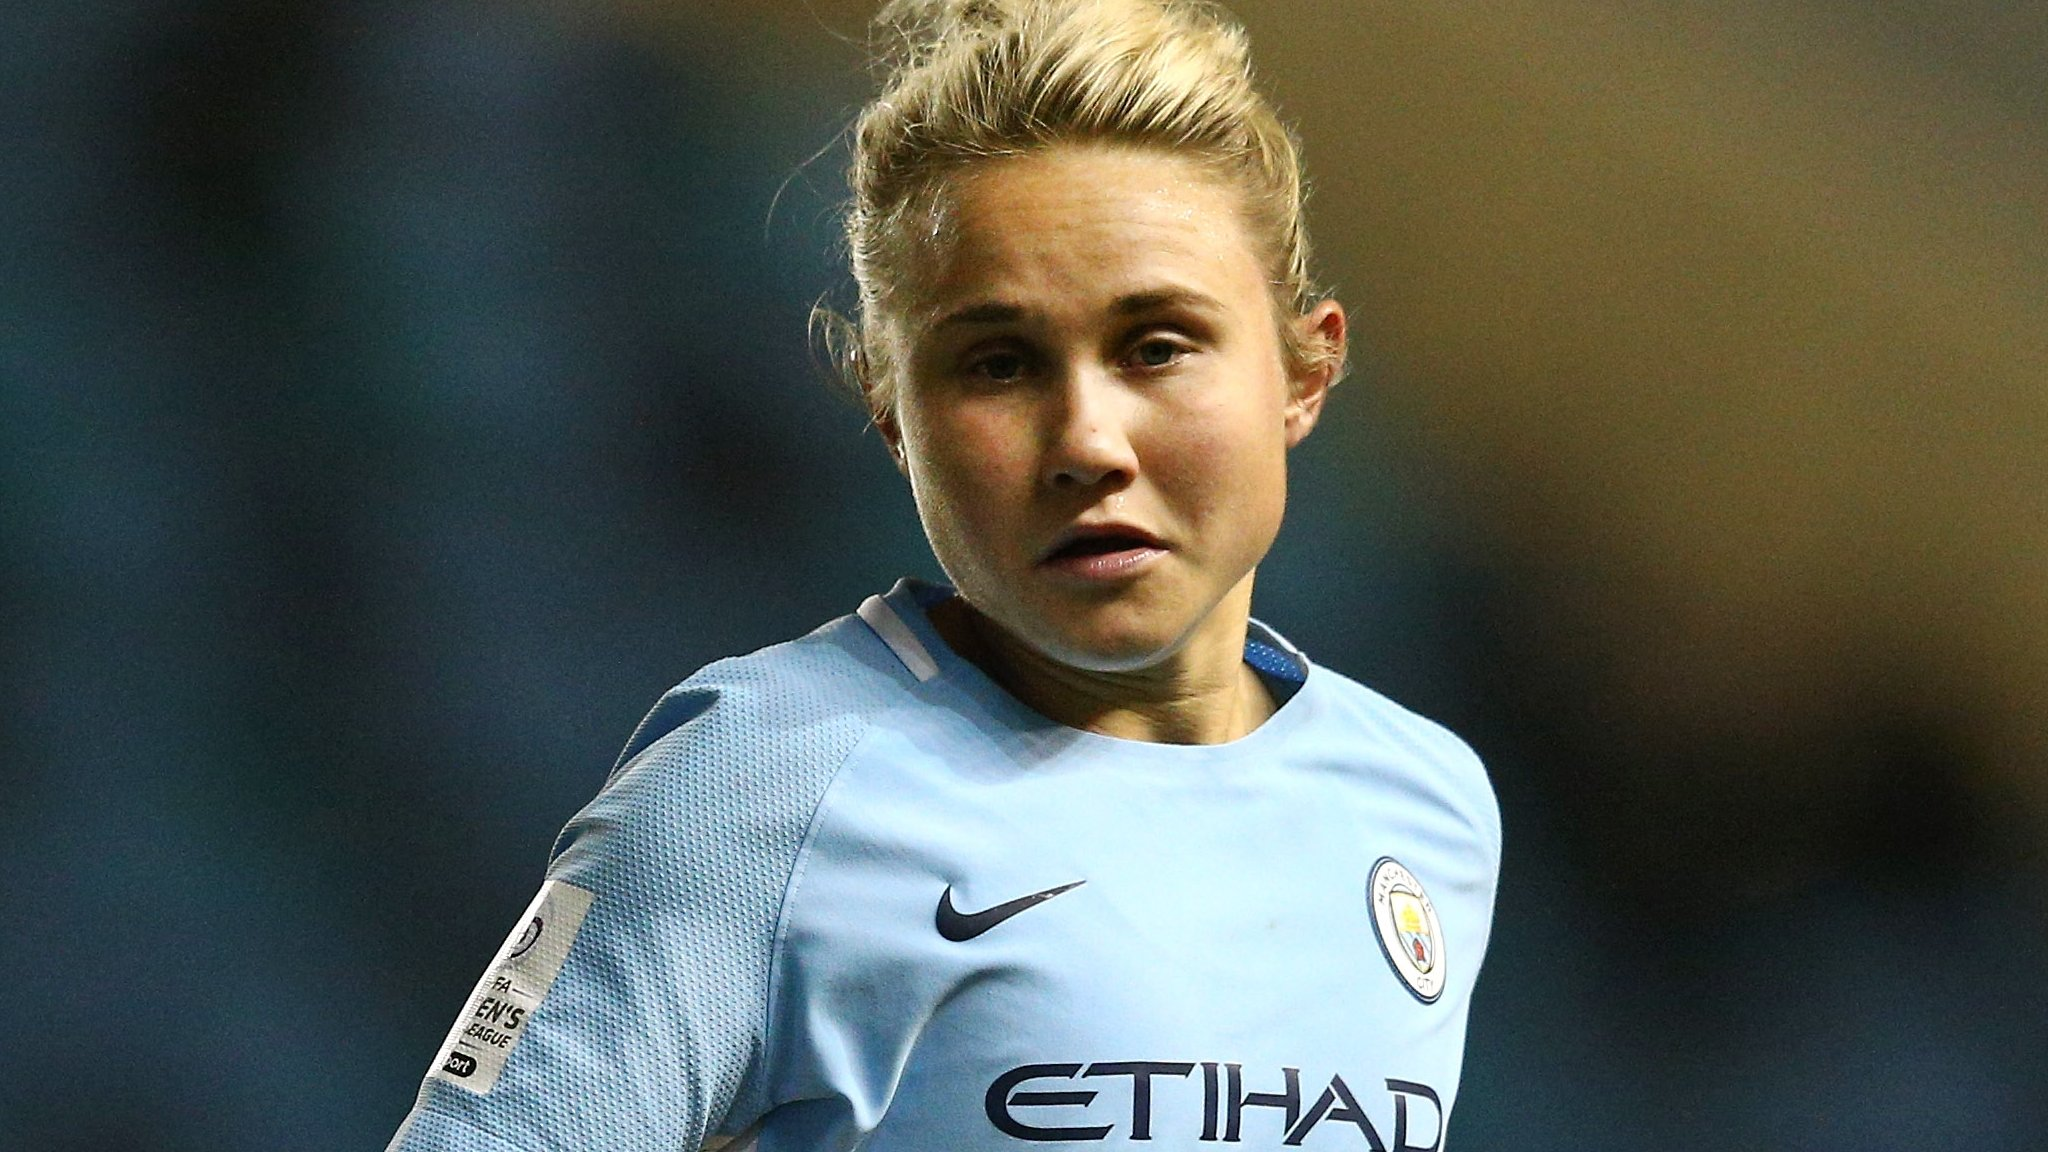 Women's Champions League: Manchester City face Linkopings, Chelsea Ladies play Montpellier